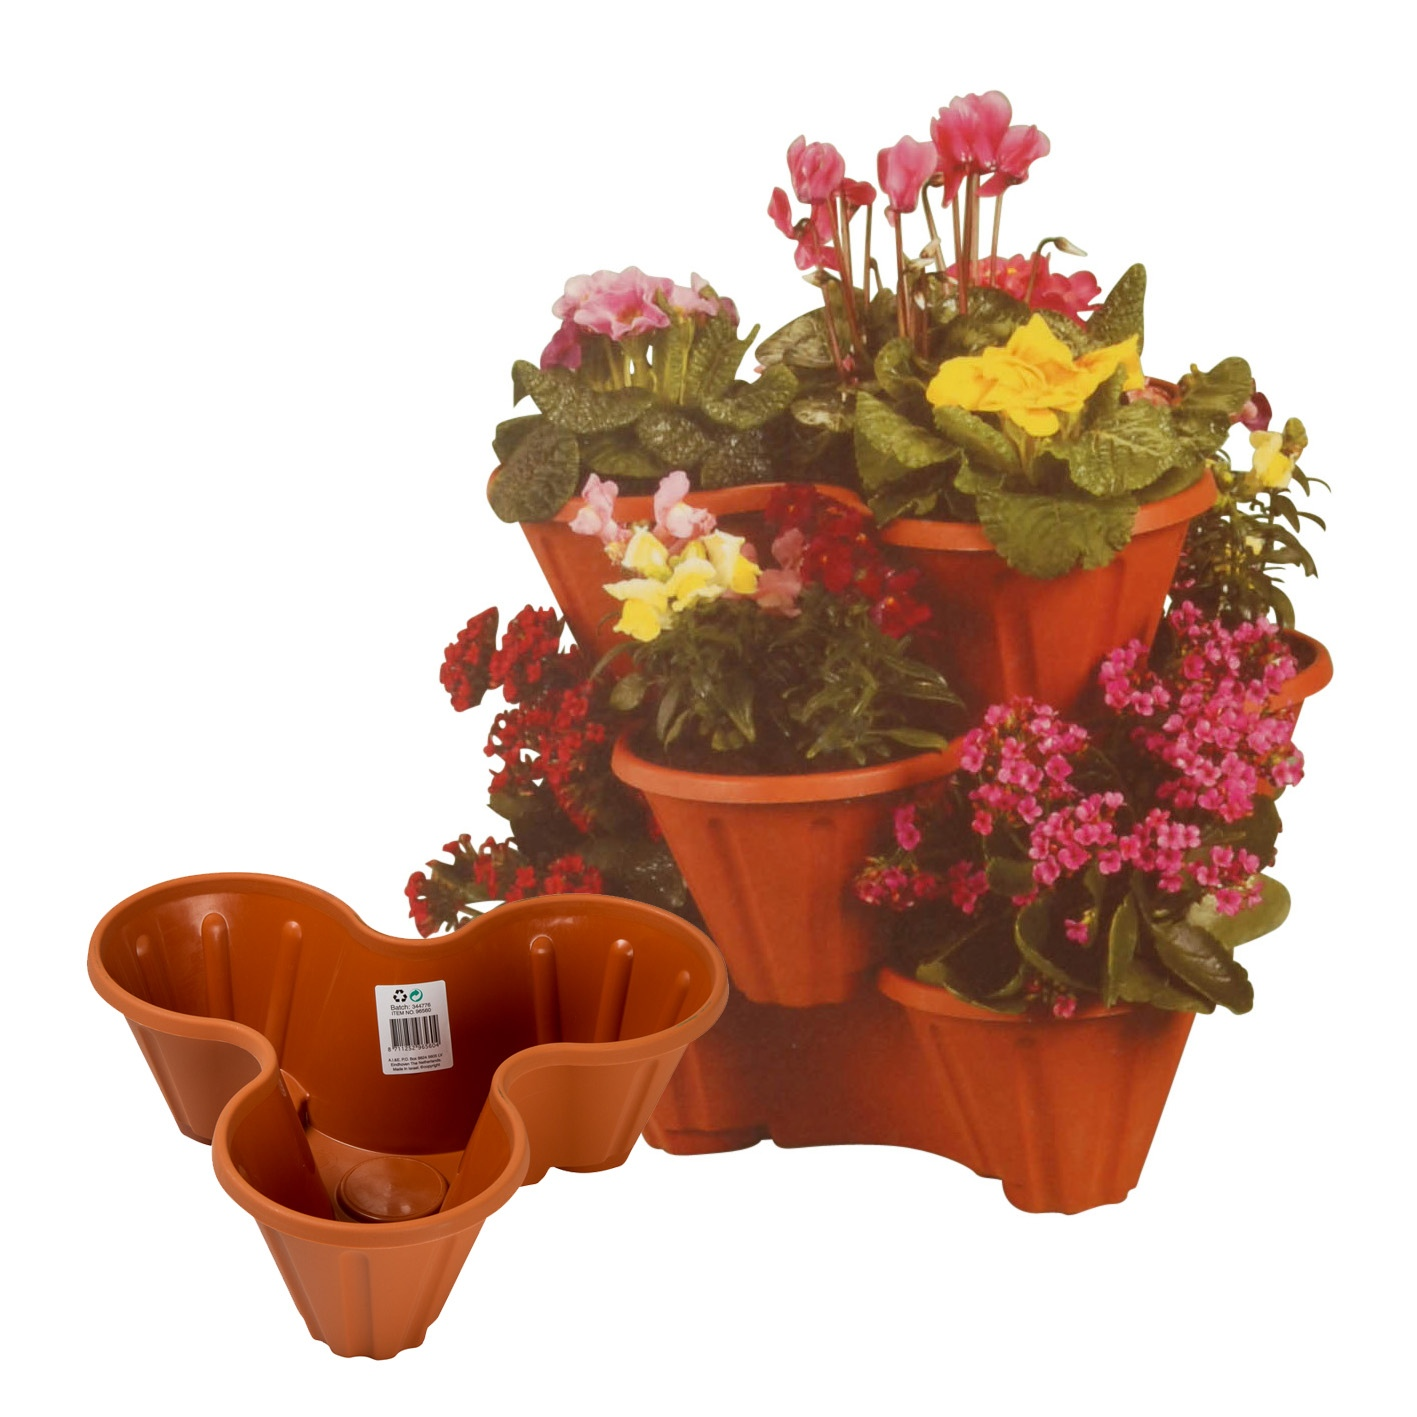 Herb Planter Pot Stackable Plastic 3 Plants Flower Pots Pot Holder